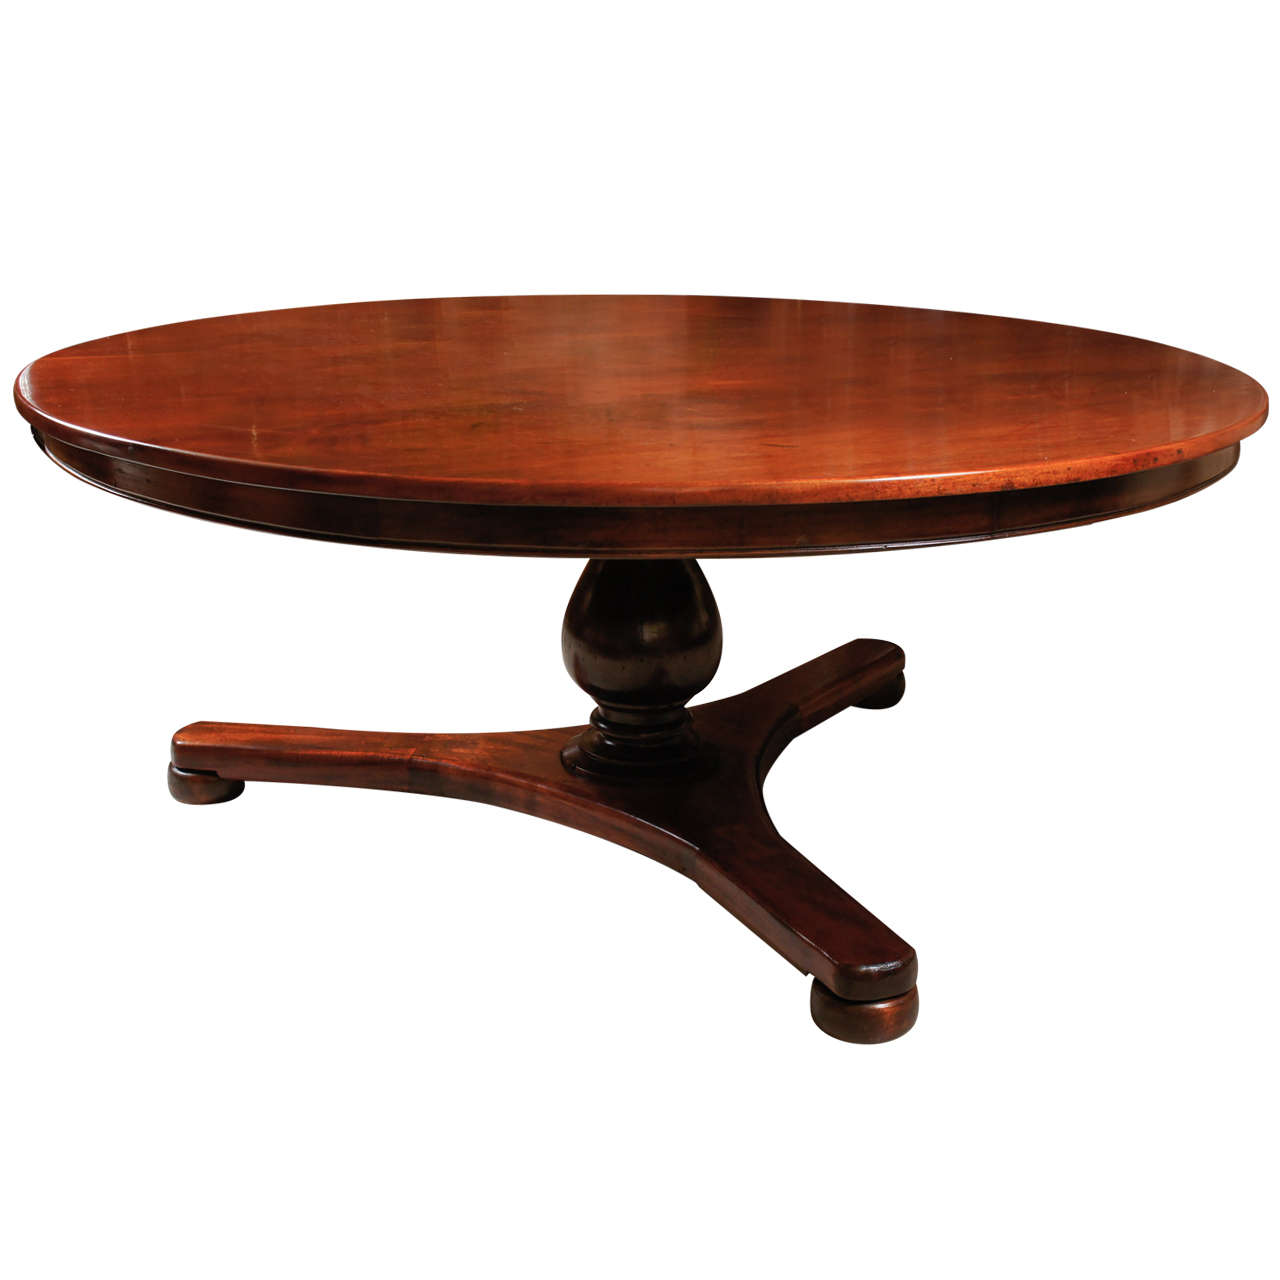 Large round regency dining room table at 1stdibs for Large round dining room table